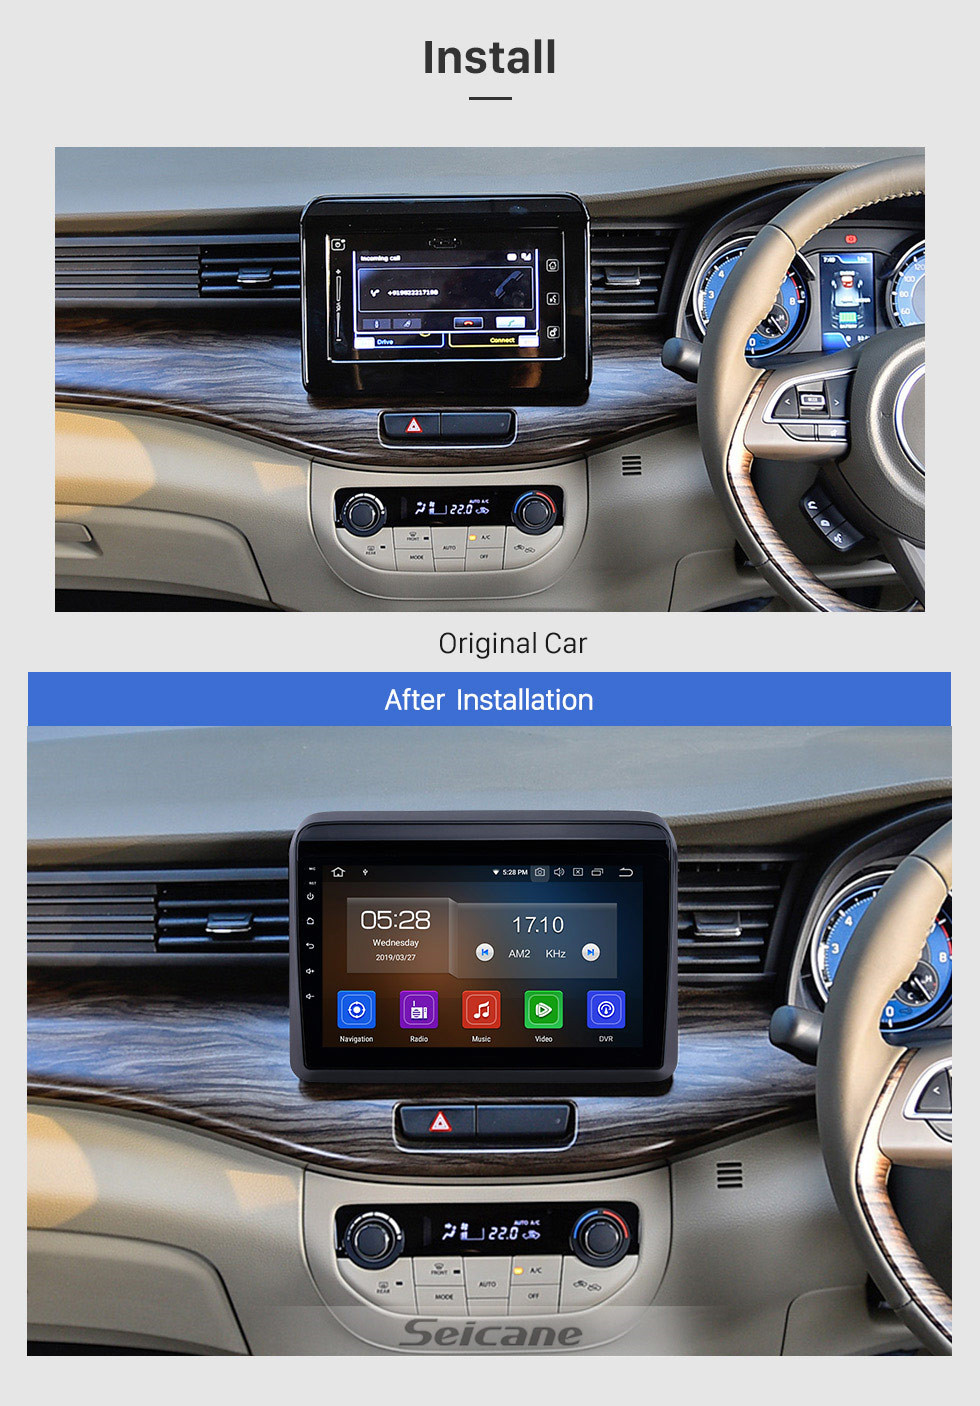 Seicane 9 inch HD Touchscreen 2018 2019 Suzuki ERTIGA Android 10.0 Radio with GPS Navigation System WIFI USB Bluetooth Mirror Link support Backup Camera DVR 1080p DVD Player TPMS